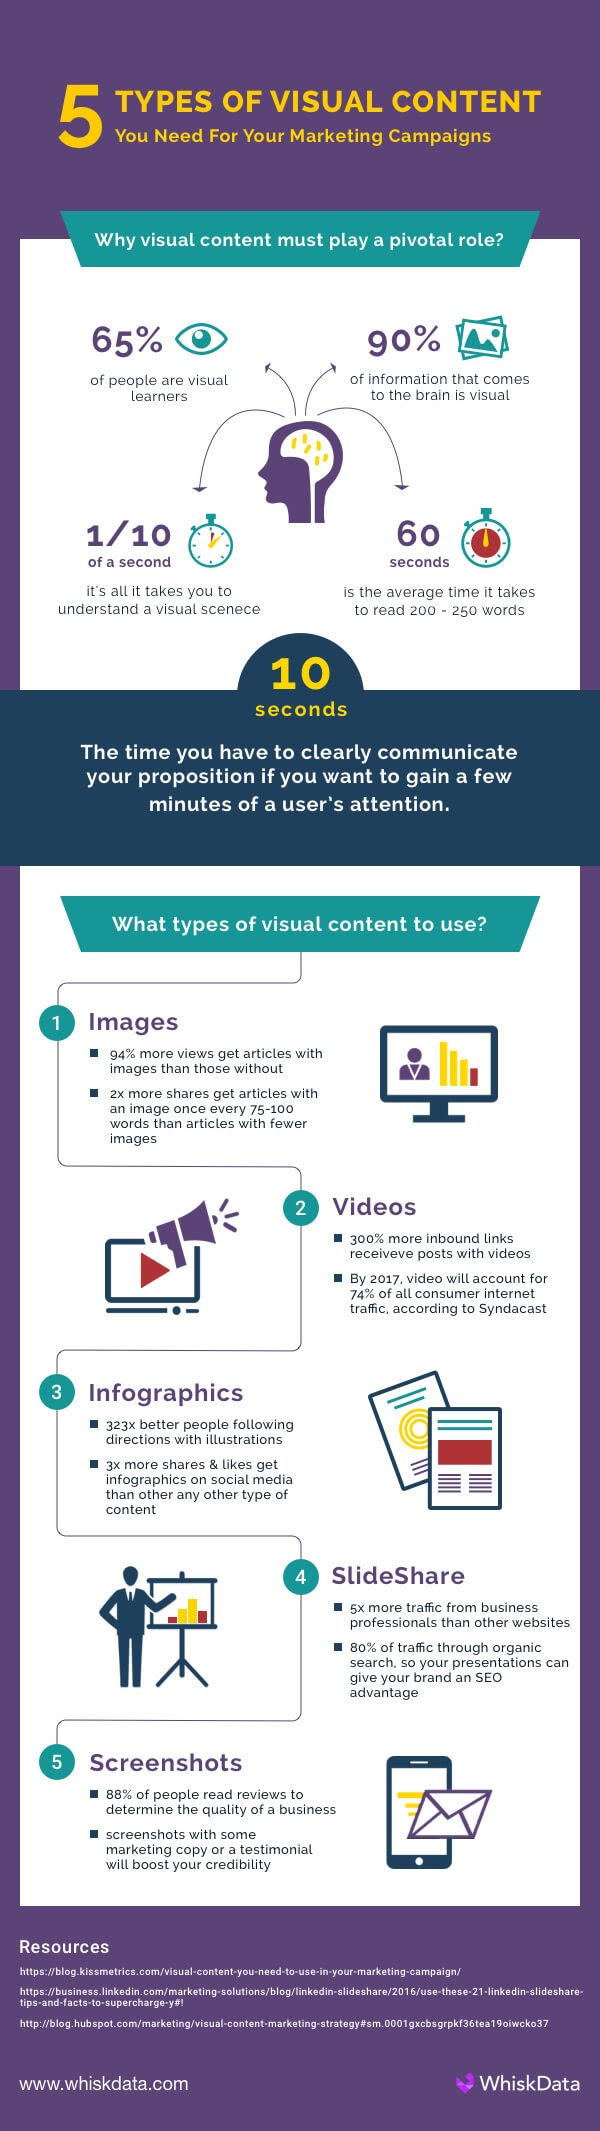 5 Types of Visual Content You Need for Your Marketing Campaign